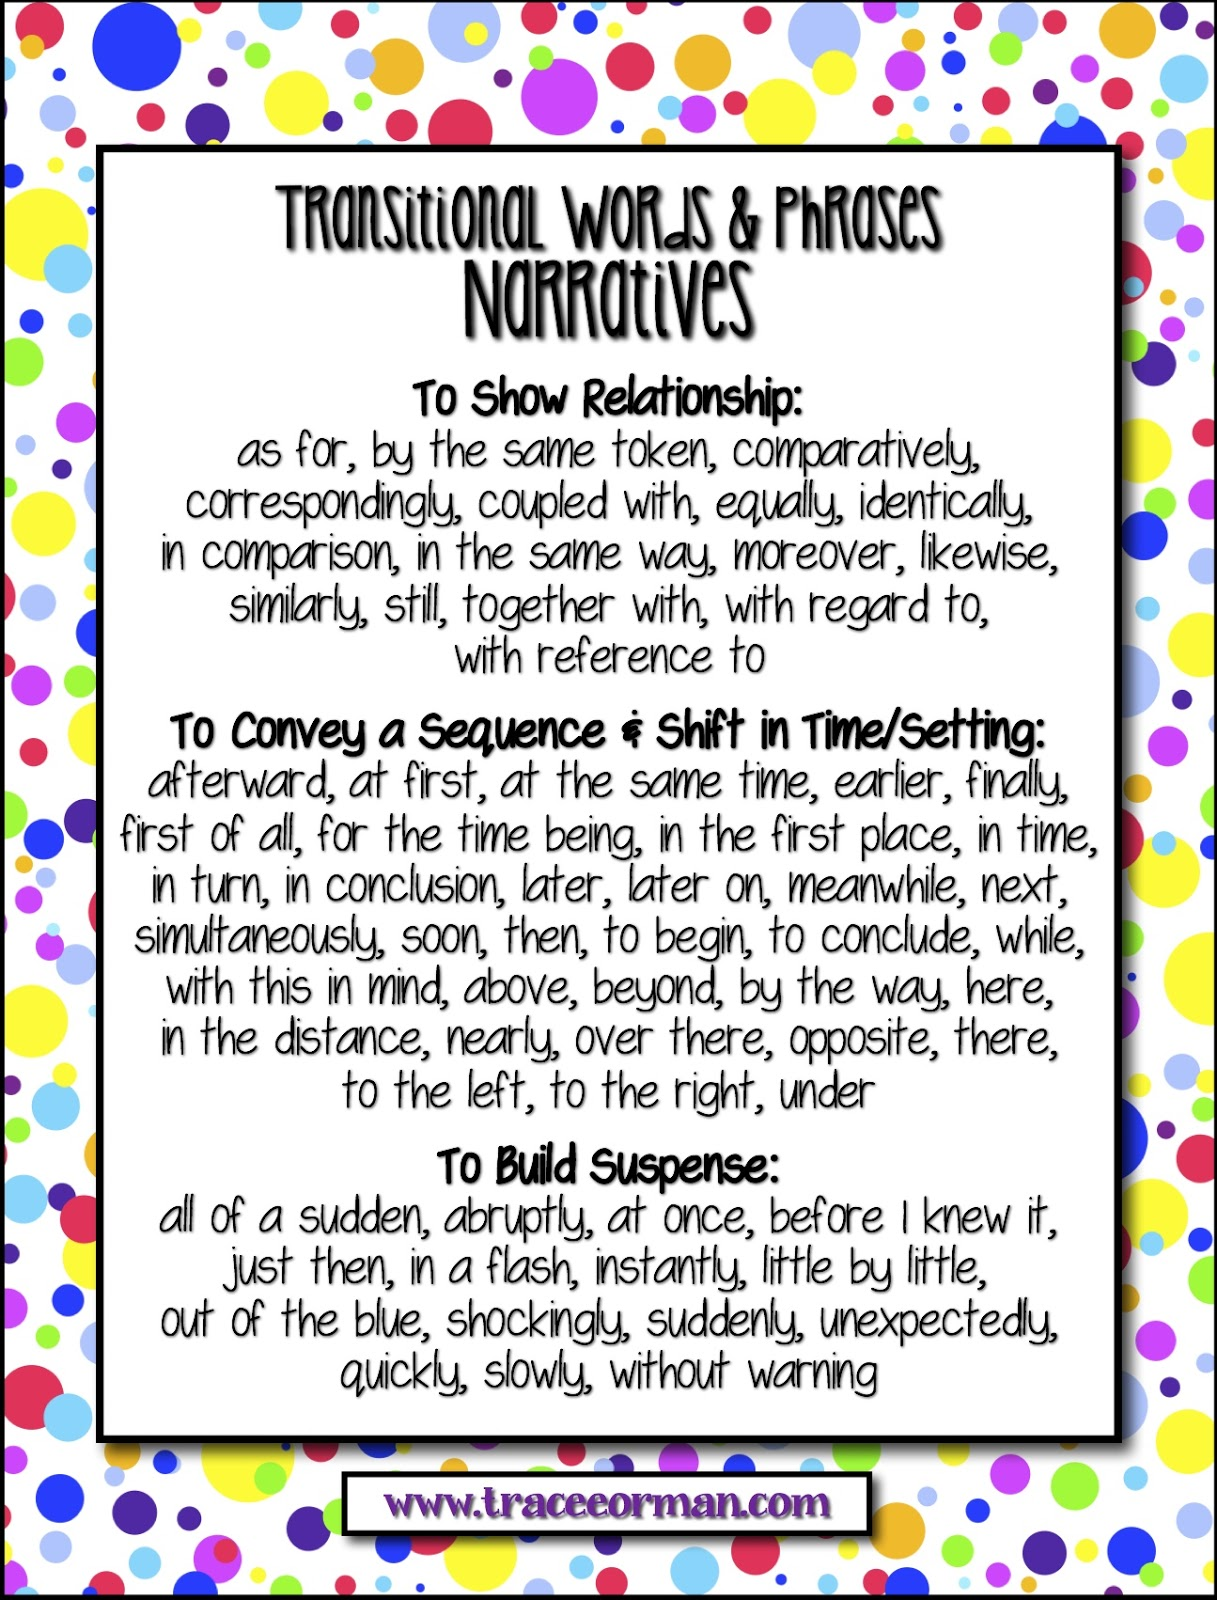 worksheet Transitional Words And Phrases Worksheet mrs ormans classroom common core tips using transitional words transitions for narratives anchor chart www traceeorman com